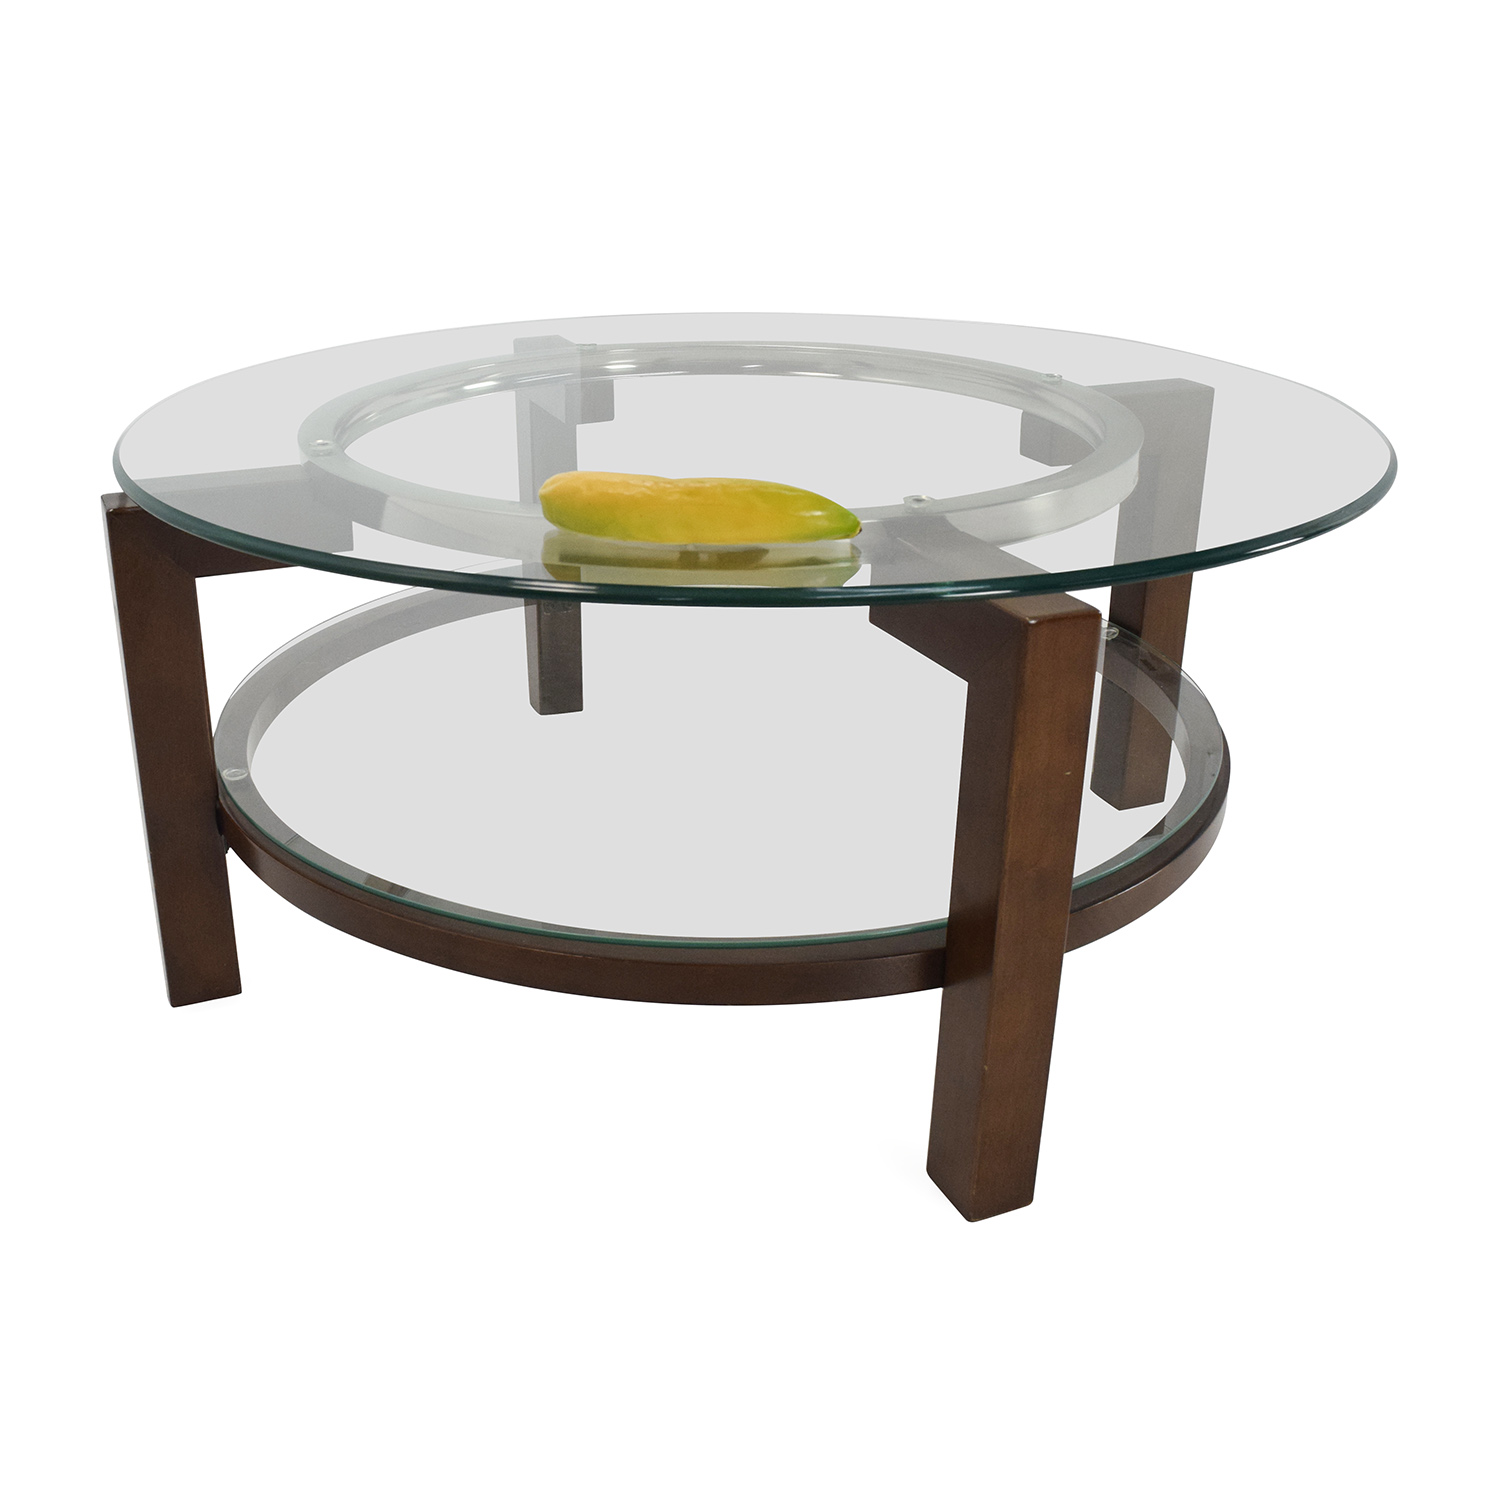 88 off macy 39 s macy 39 s glass top coffee table tables for K furniture coffee table